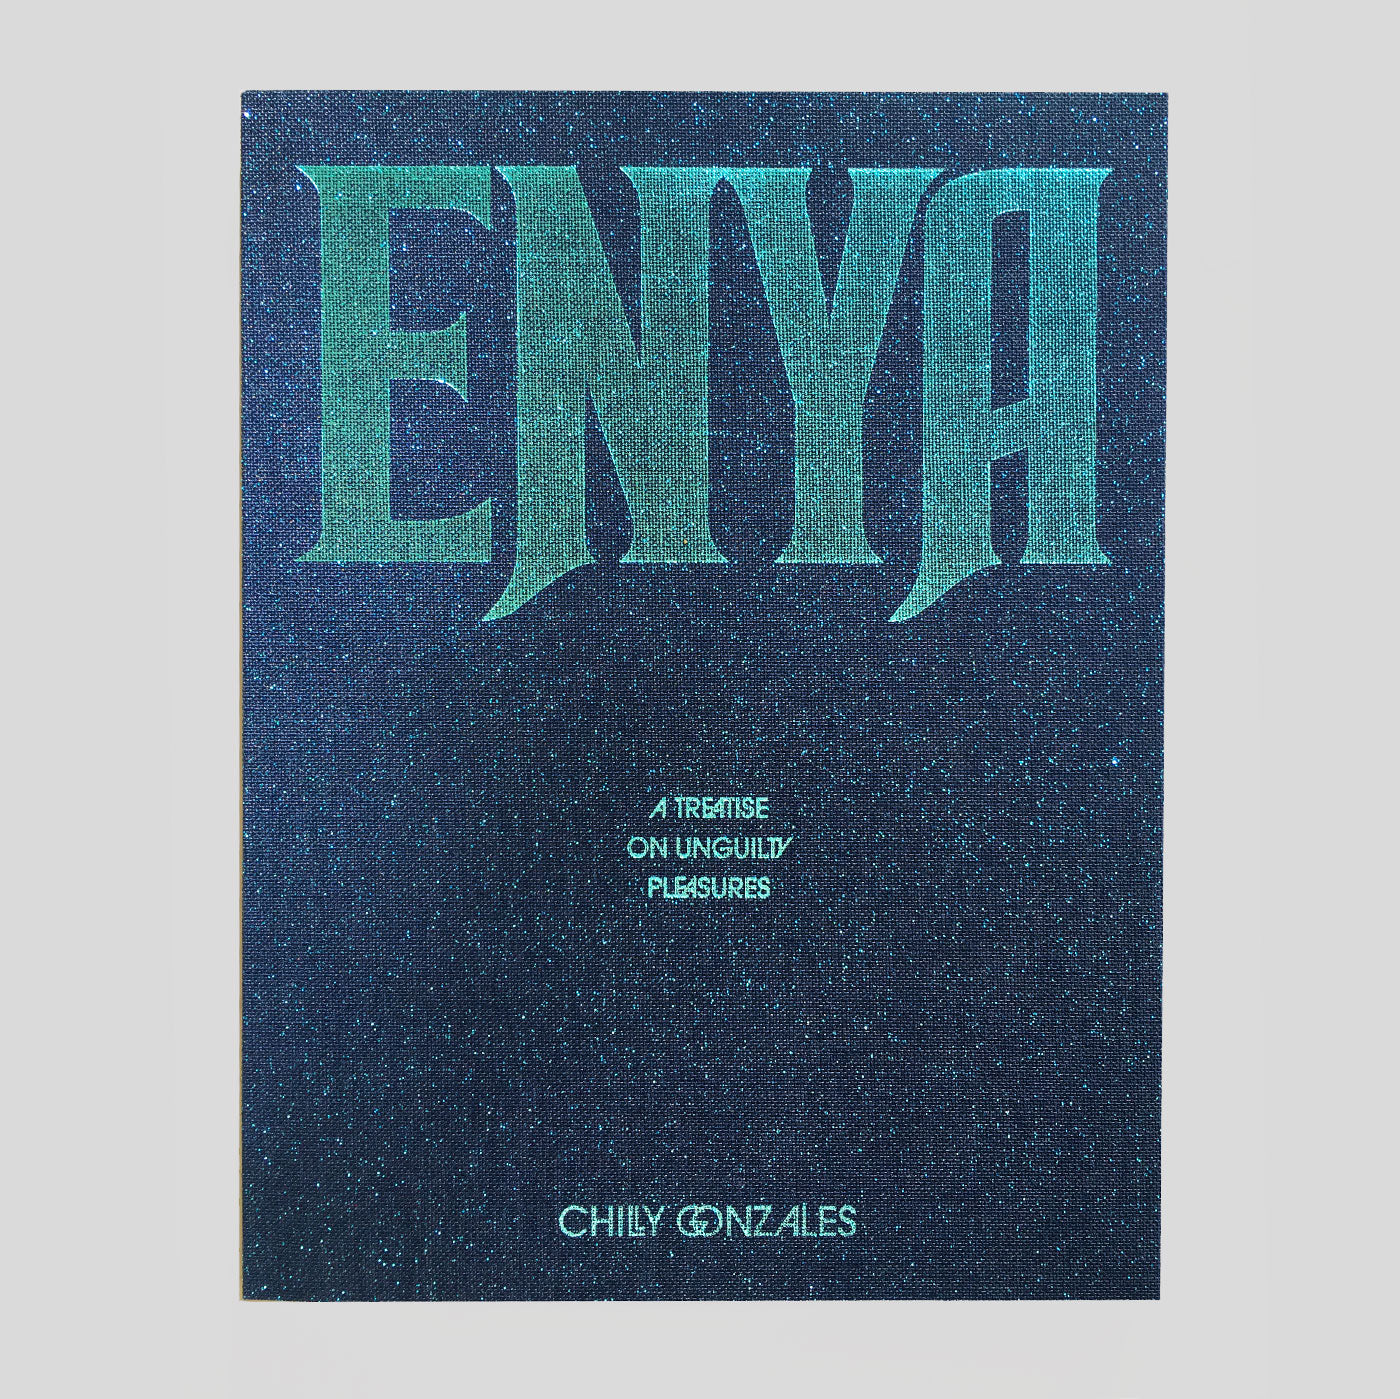 Enya - A Treatise On Unguilty Pleasures | Chilly Gonzales